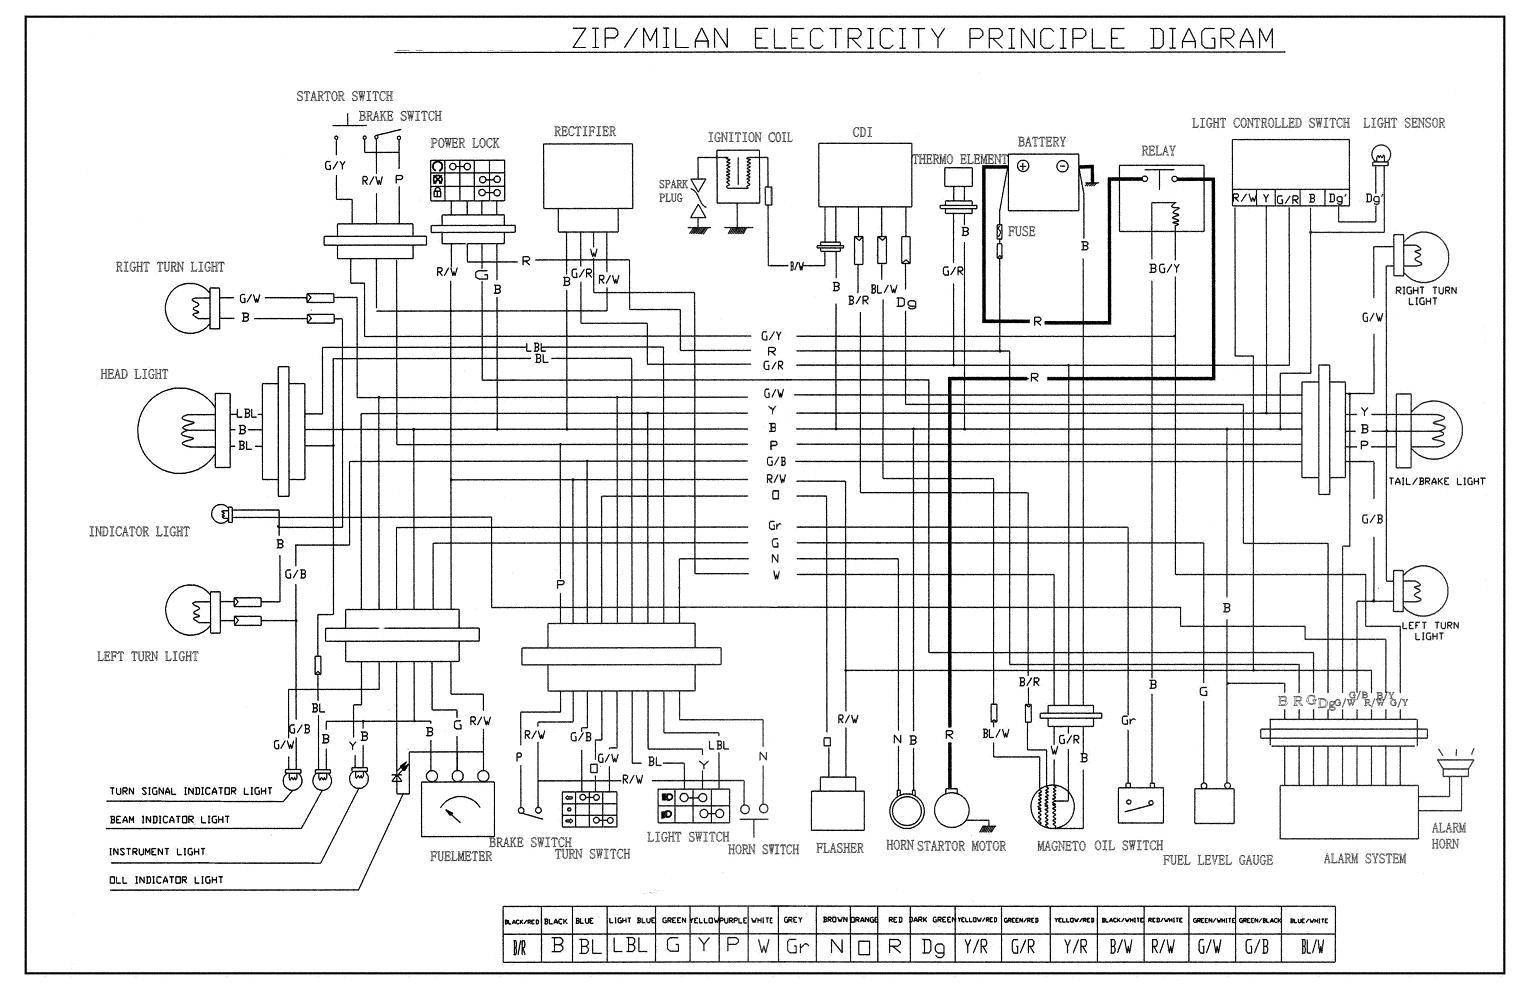 small resolution of 2014 tao 50cc scooter wiring diagram best wiring libraryvento motorcycle manuals pdf wiring diagrams fault codes